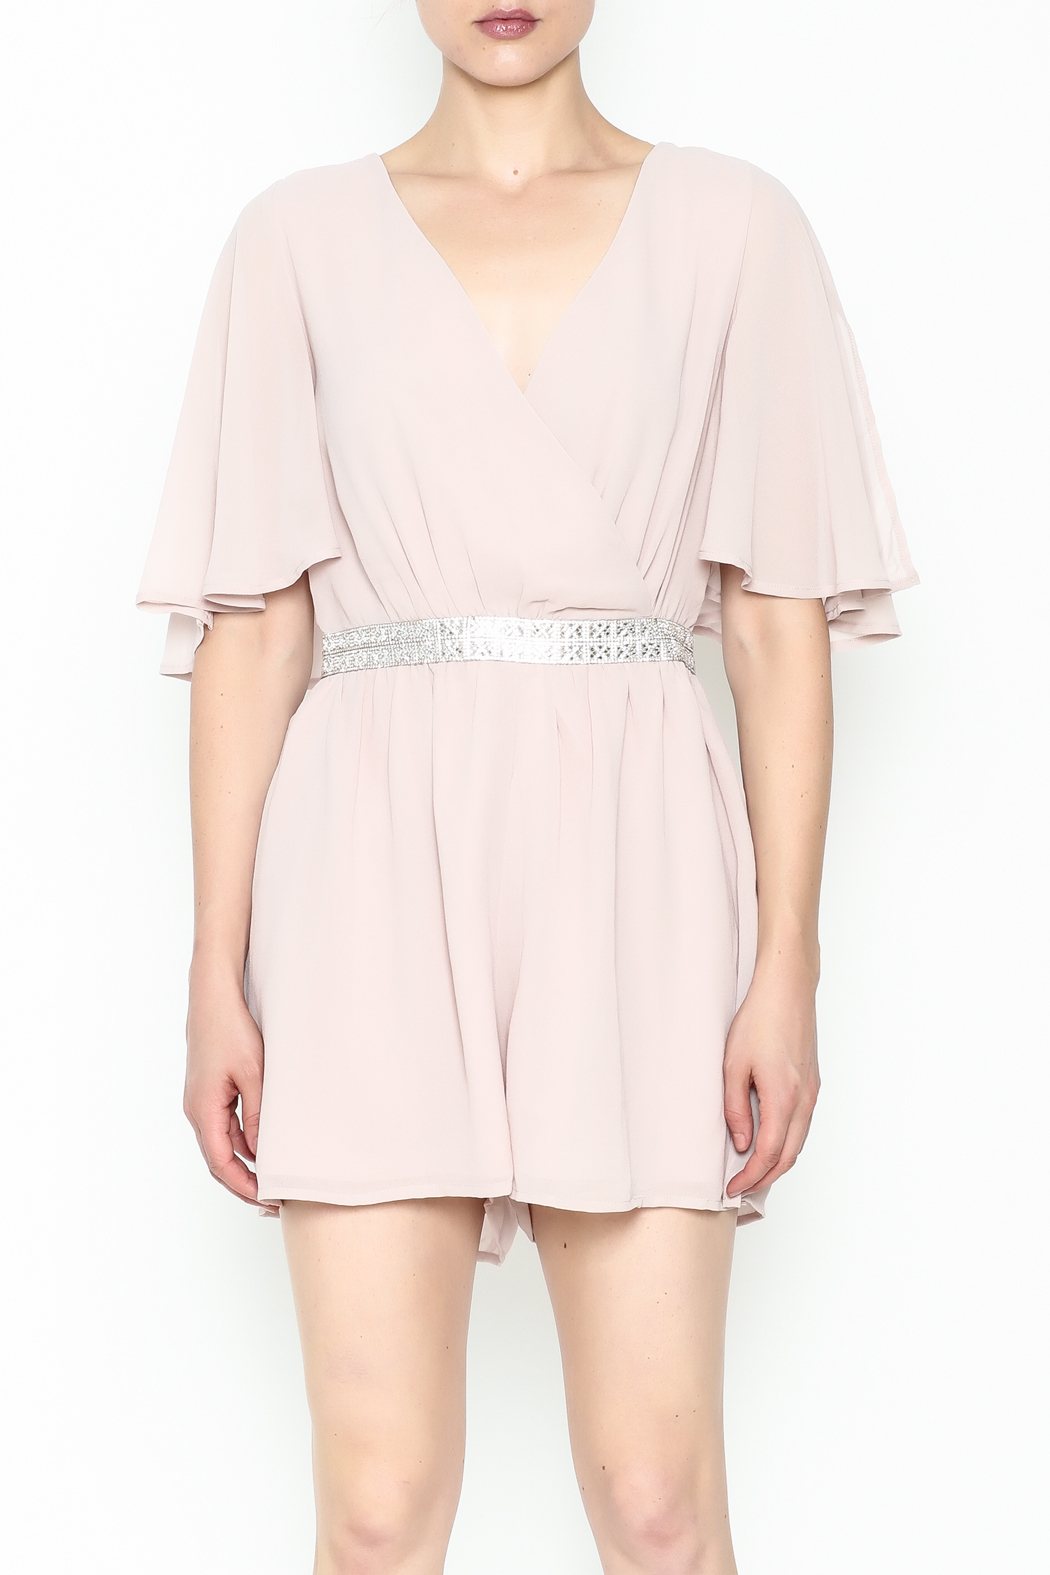 Ark & Co. Jewel Waist Romper - Front Full Image